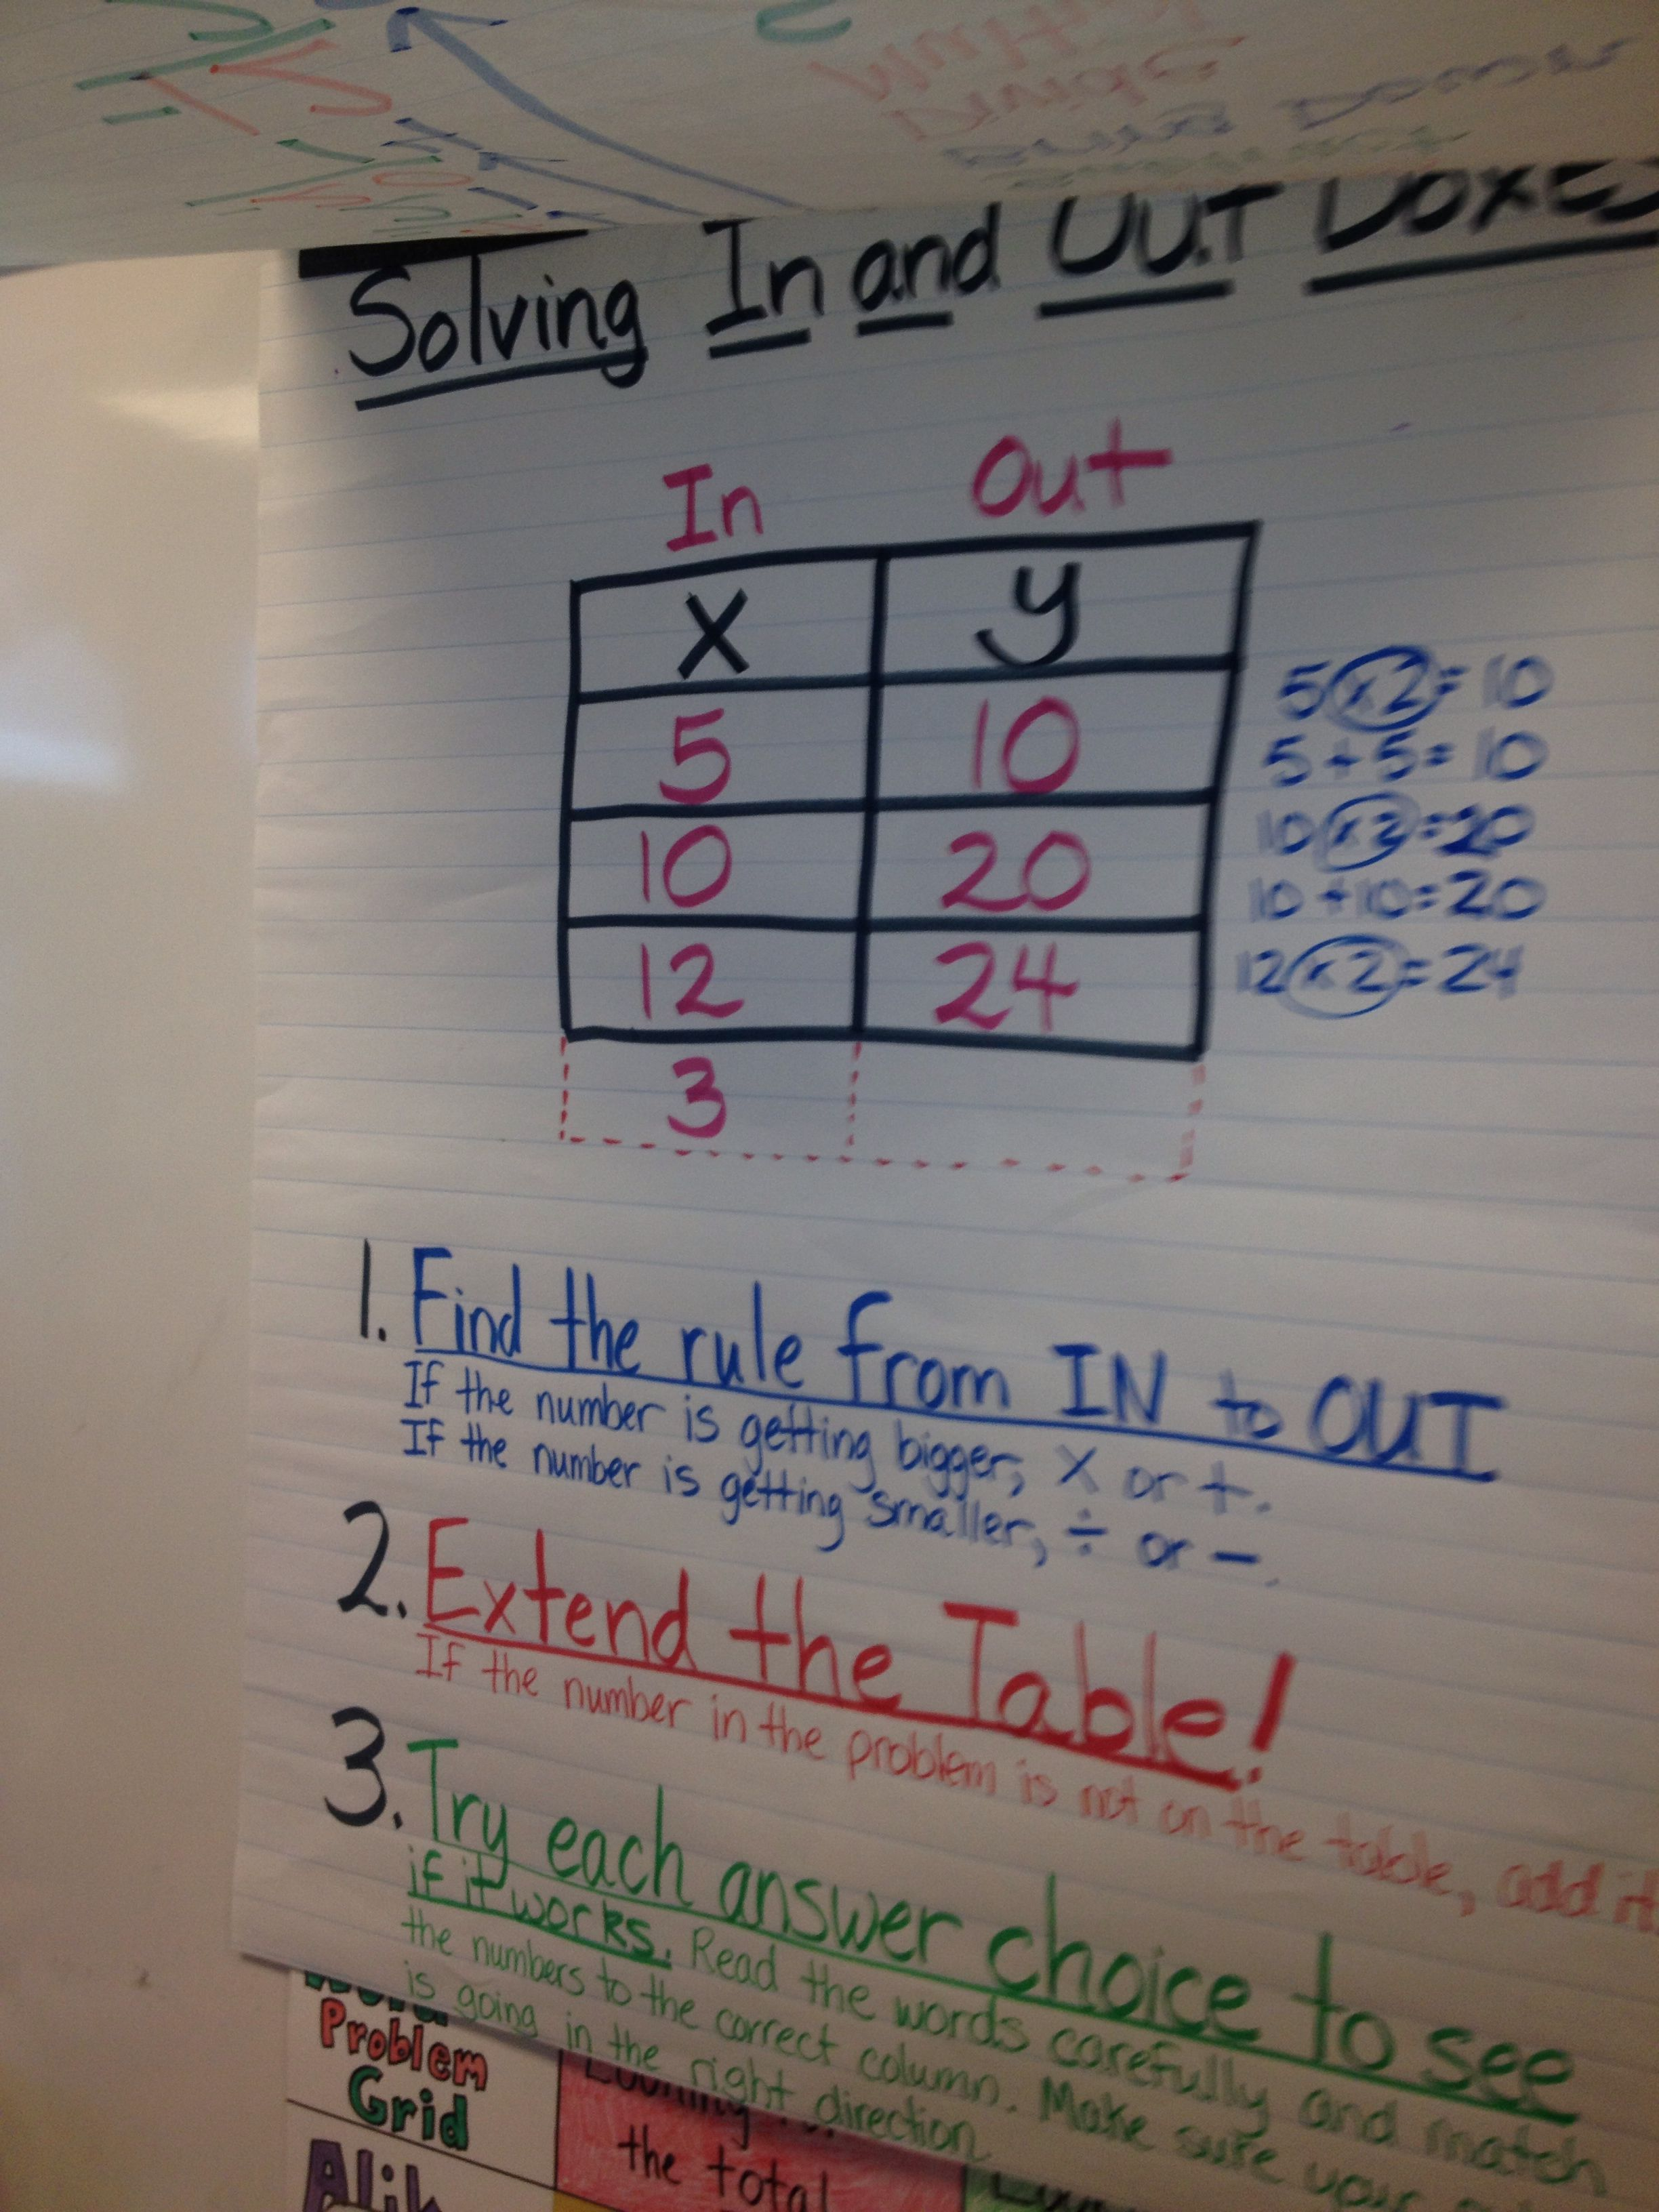 small resolution of Solving in and out tables   Free math worksheets